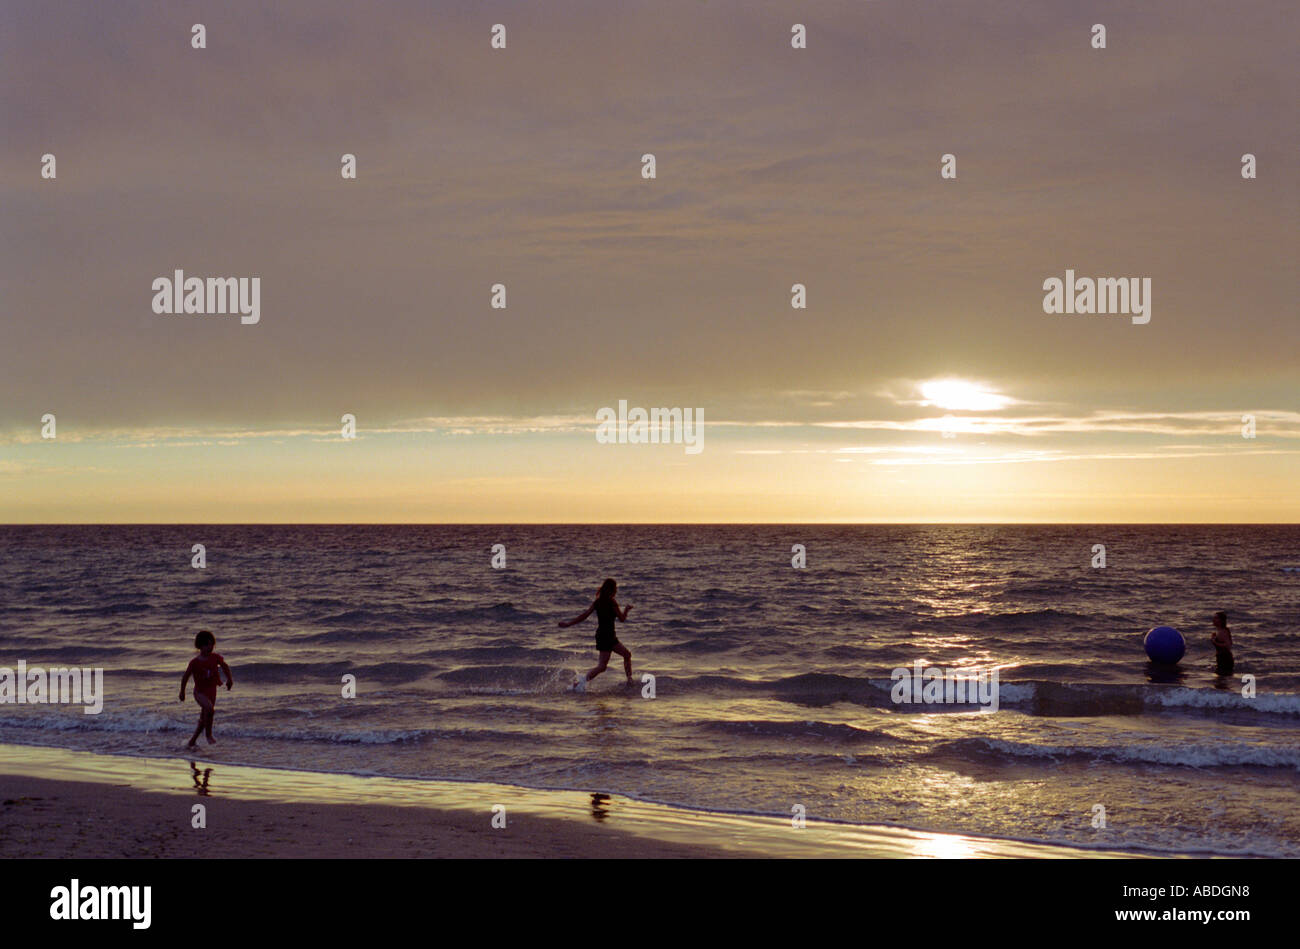 Three children playing on beach with ball near sunset Stock Photo